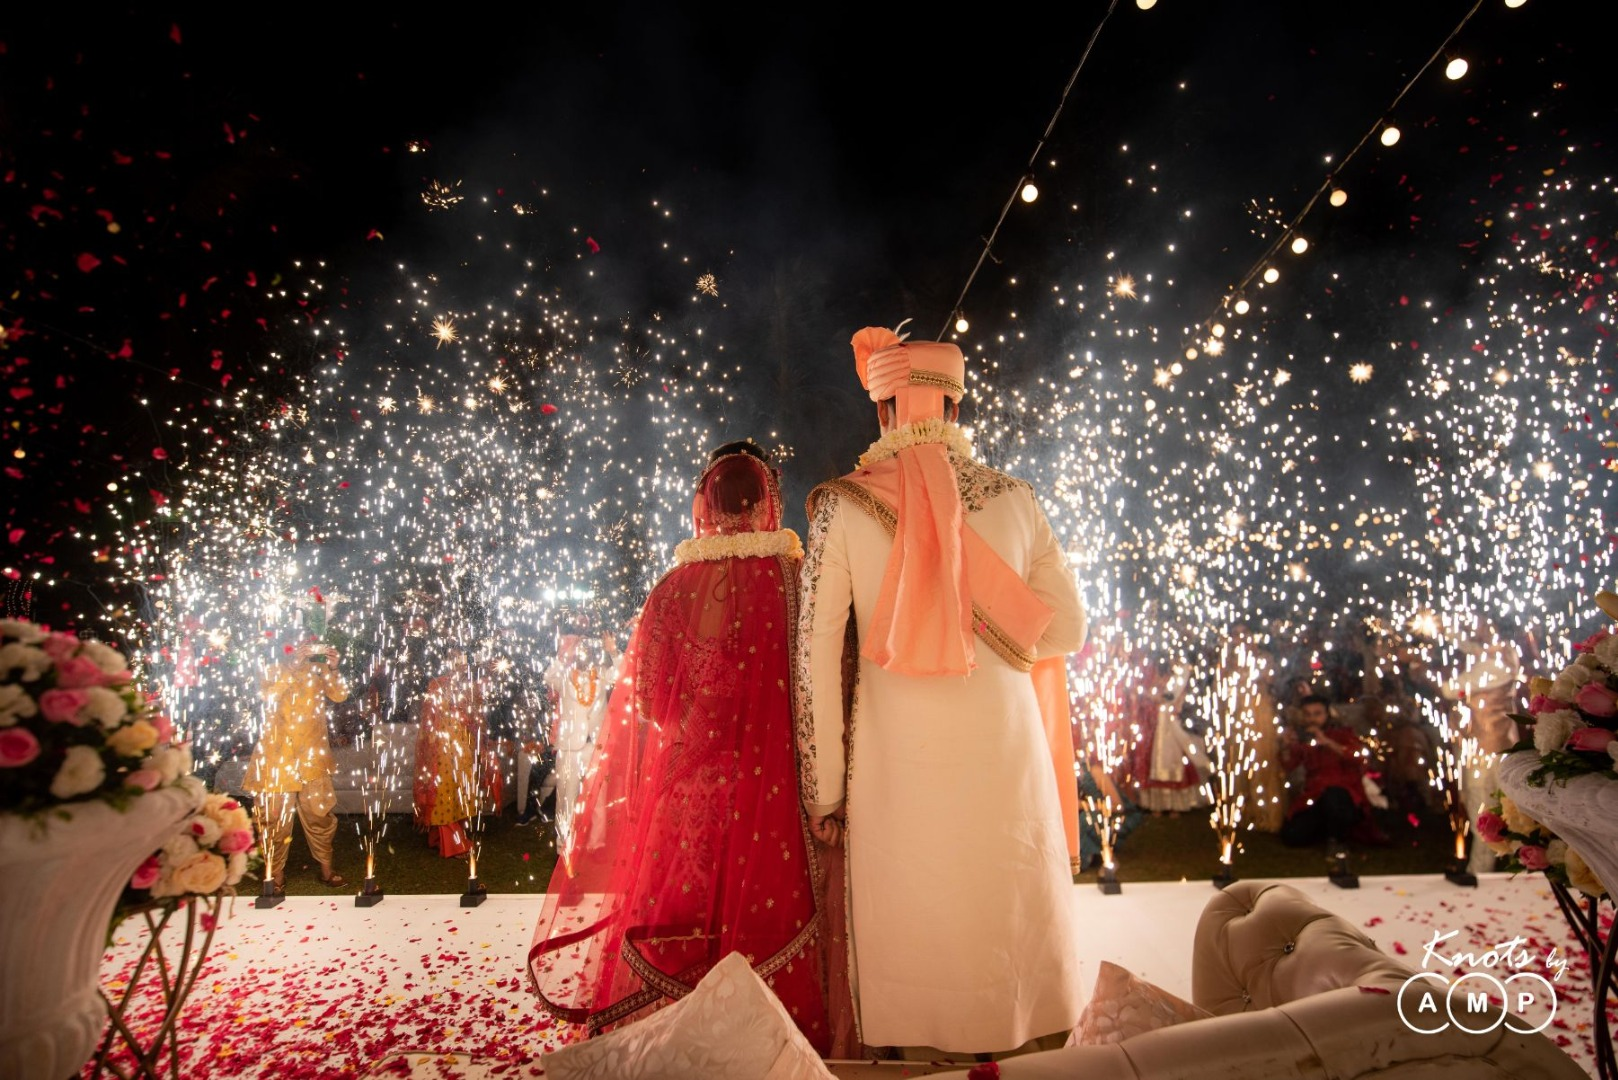 Bride Groom Post Wedding Picture on Stage with Fireworks